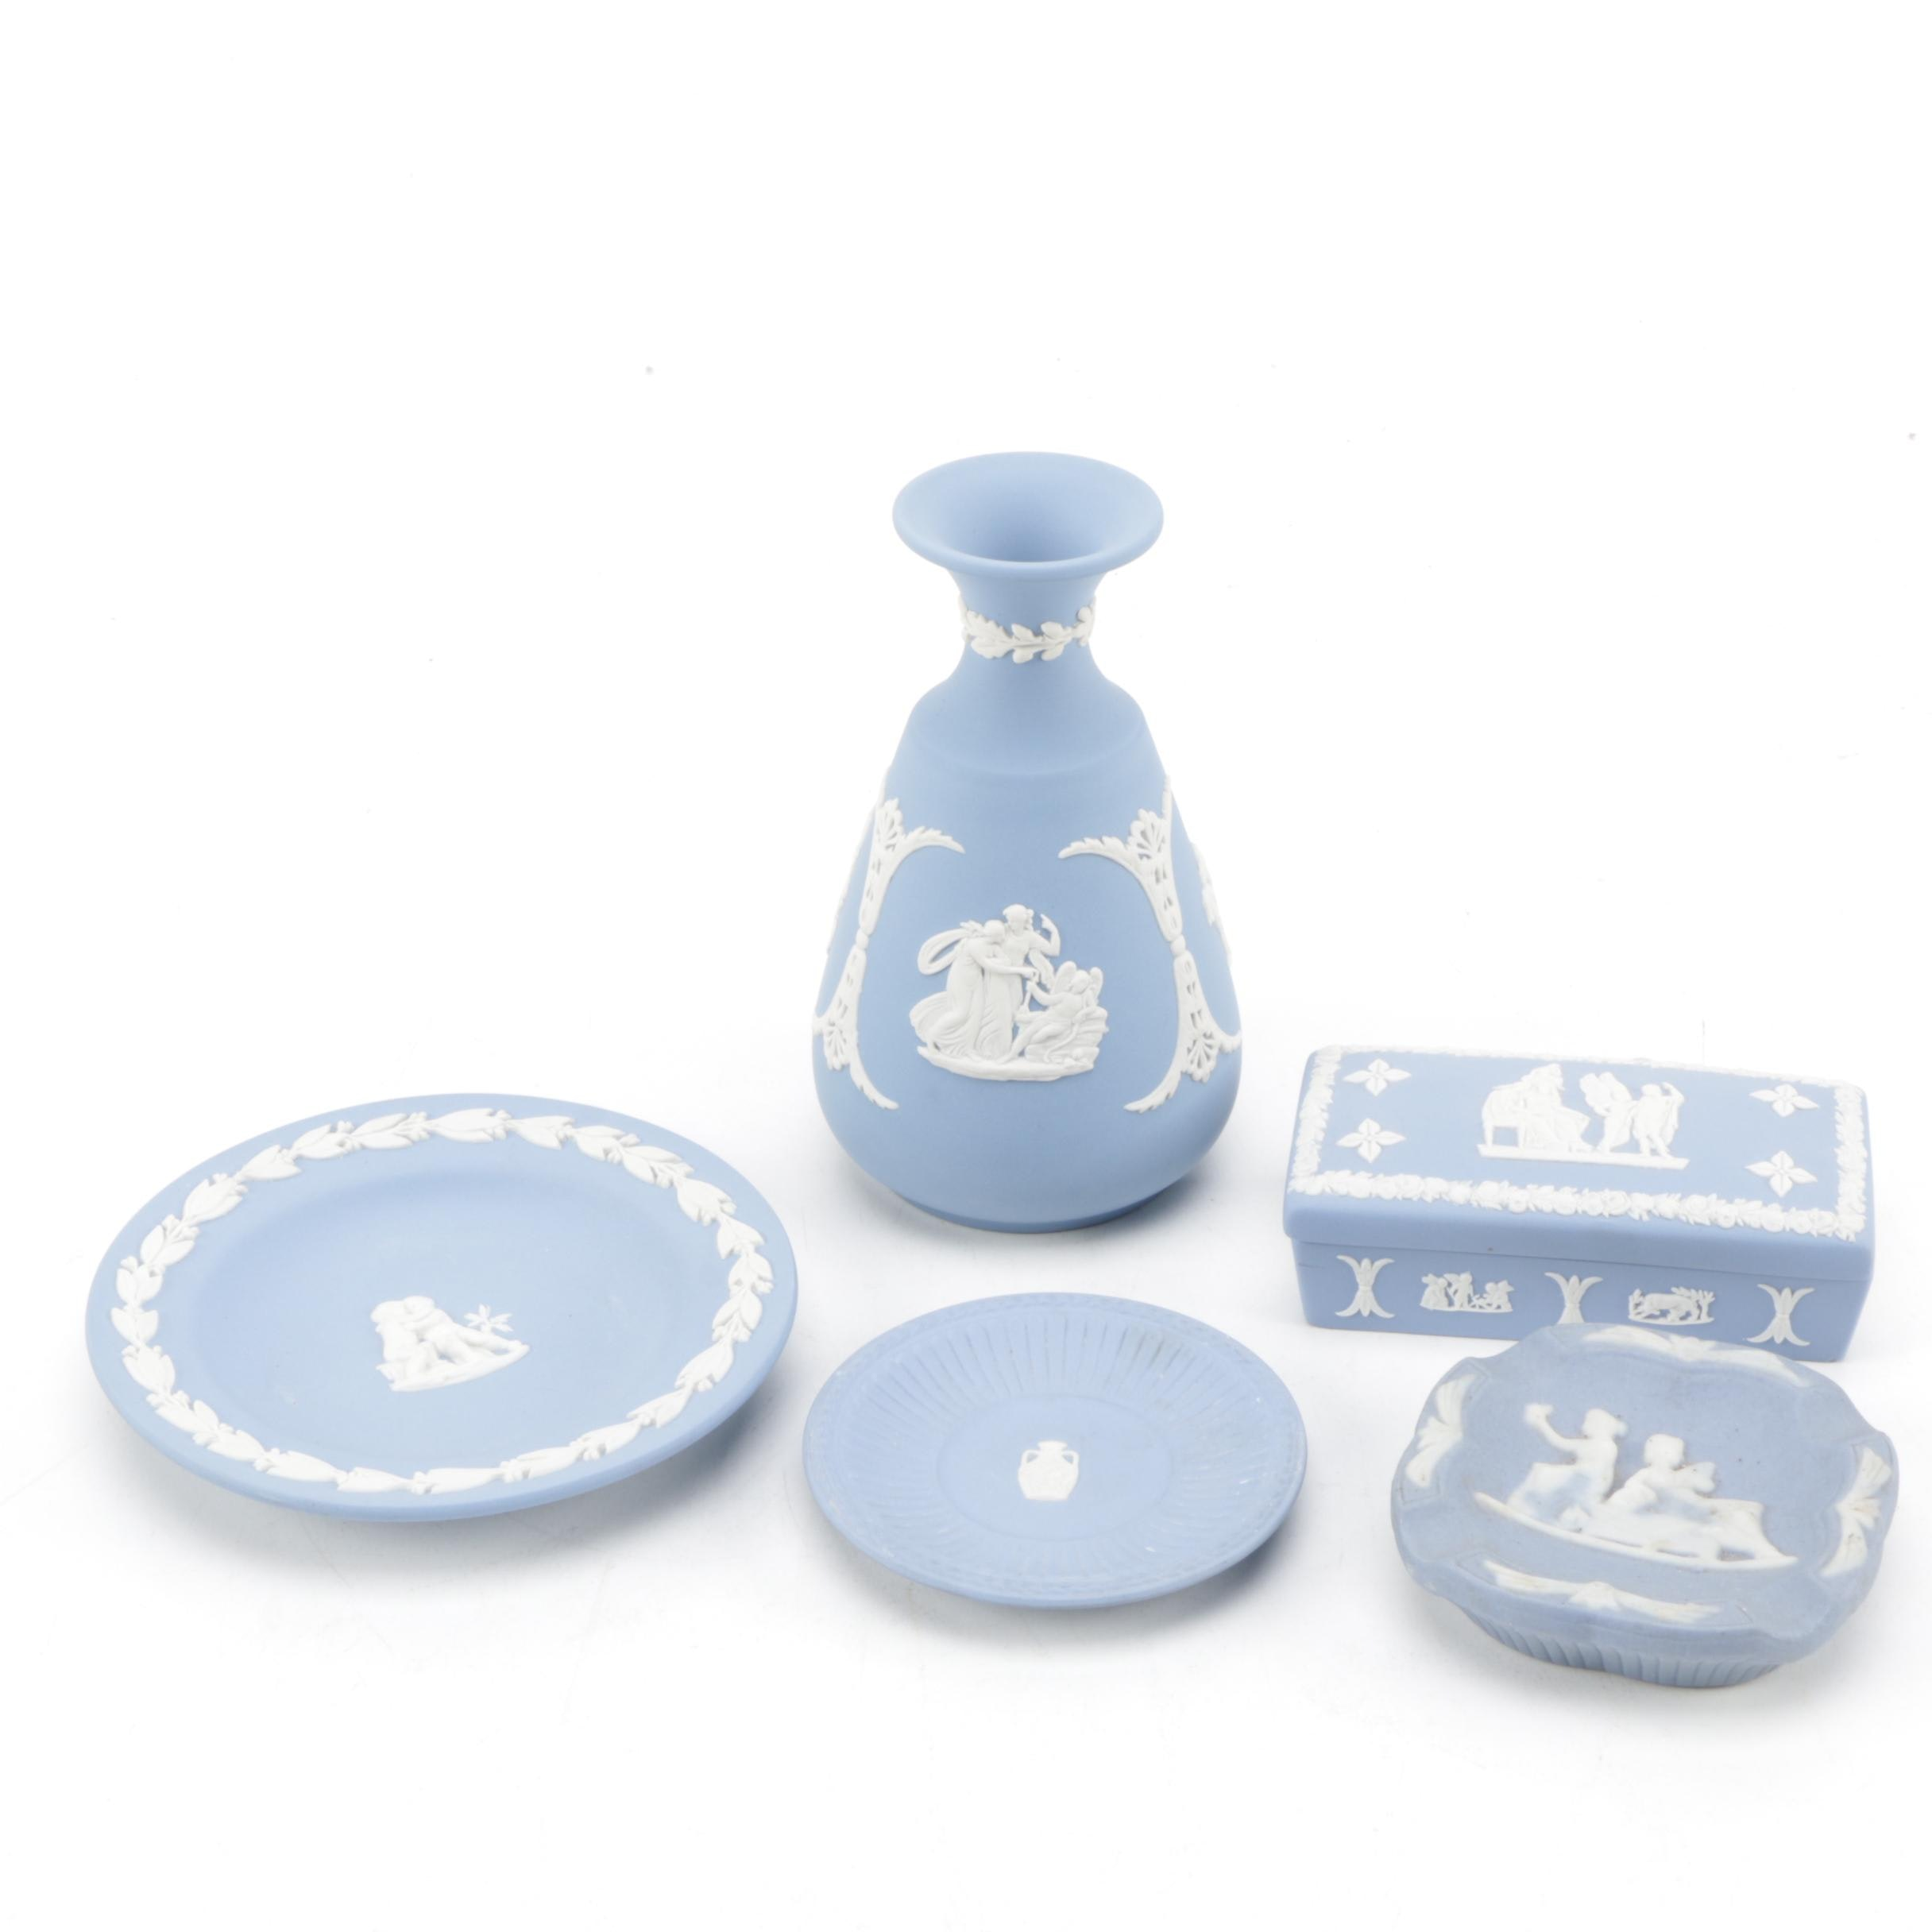 Collection of Wedgwood Jasperware